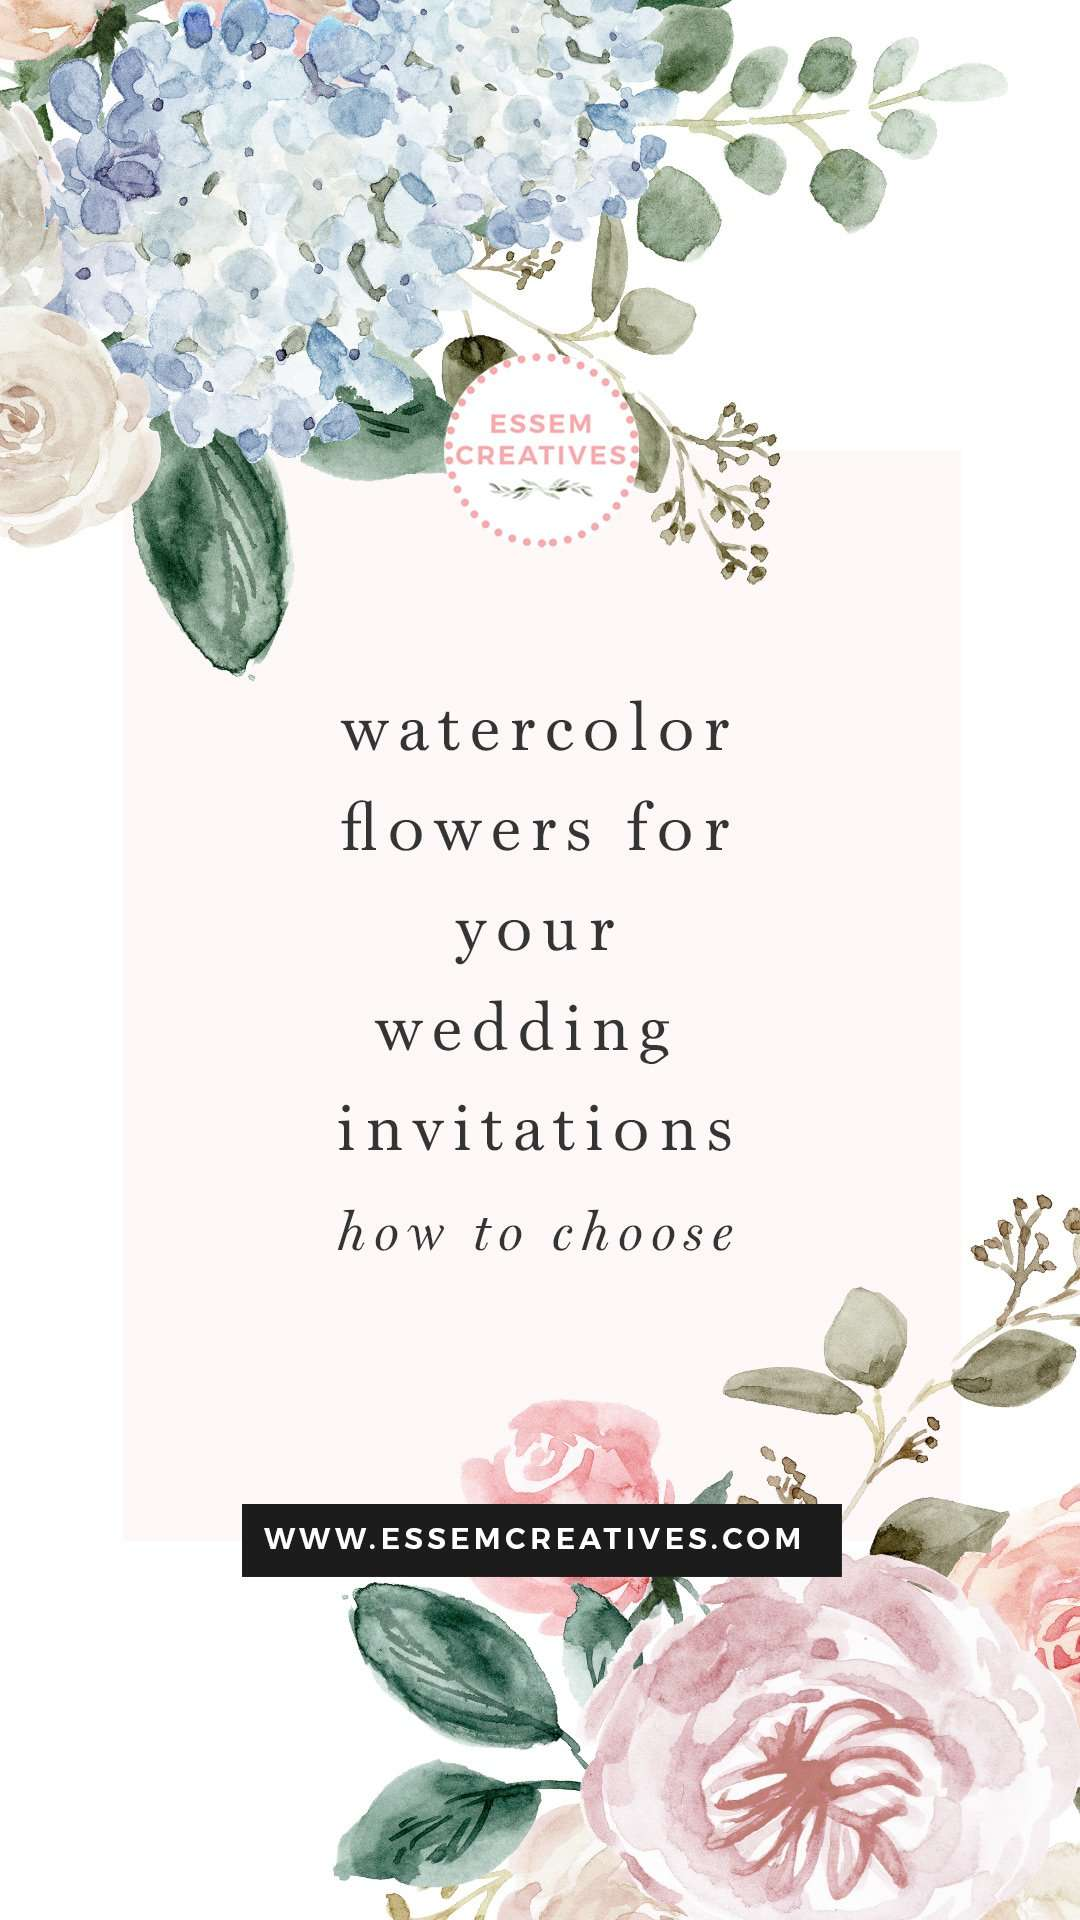 Are you looking for pretty and modern watercolor flowers & florals for your wedding invitations? You're at the right place! Are you possibly planning to make your invitations all by yourself (DIY)? It's a wonderful idea to make DIY watercolor wedding invitations, and with a little guidance from me, you'll be well on your way to having the perfect personalised, unique stationery for your big day. Click to see more>> #weddinginvitations #DIYwedding #watercolorflowers #watercolorinvitations